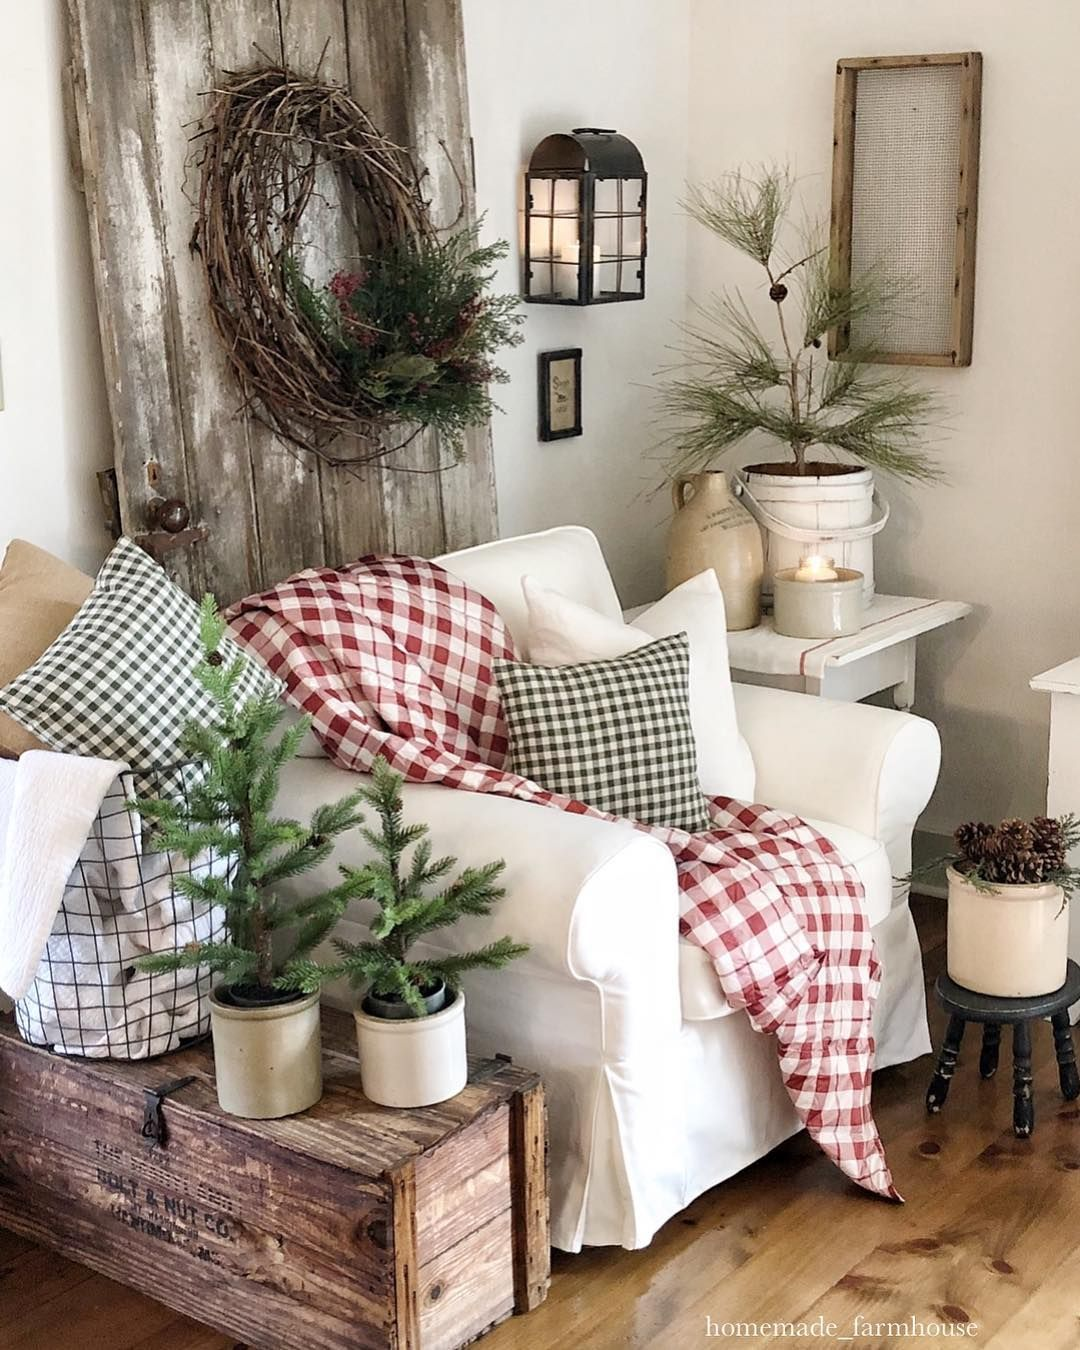 Lisa on instagram  cit    snuggle up sunday temps dipped down in the last night rrr but this corner is all cozy with eddie bauer also uncommon article gives you facts farmhouse decor living rh pinterest